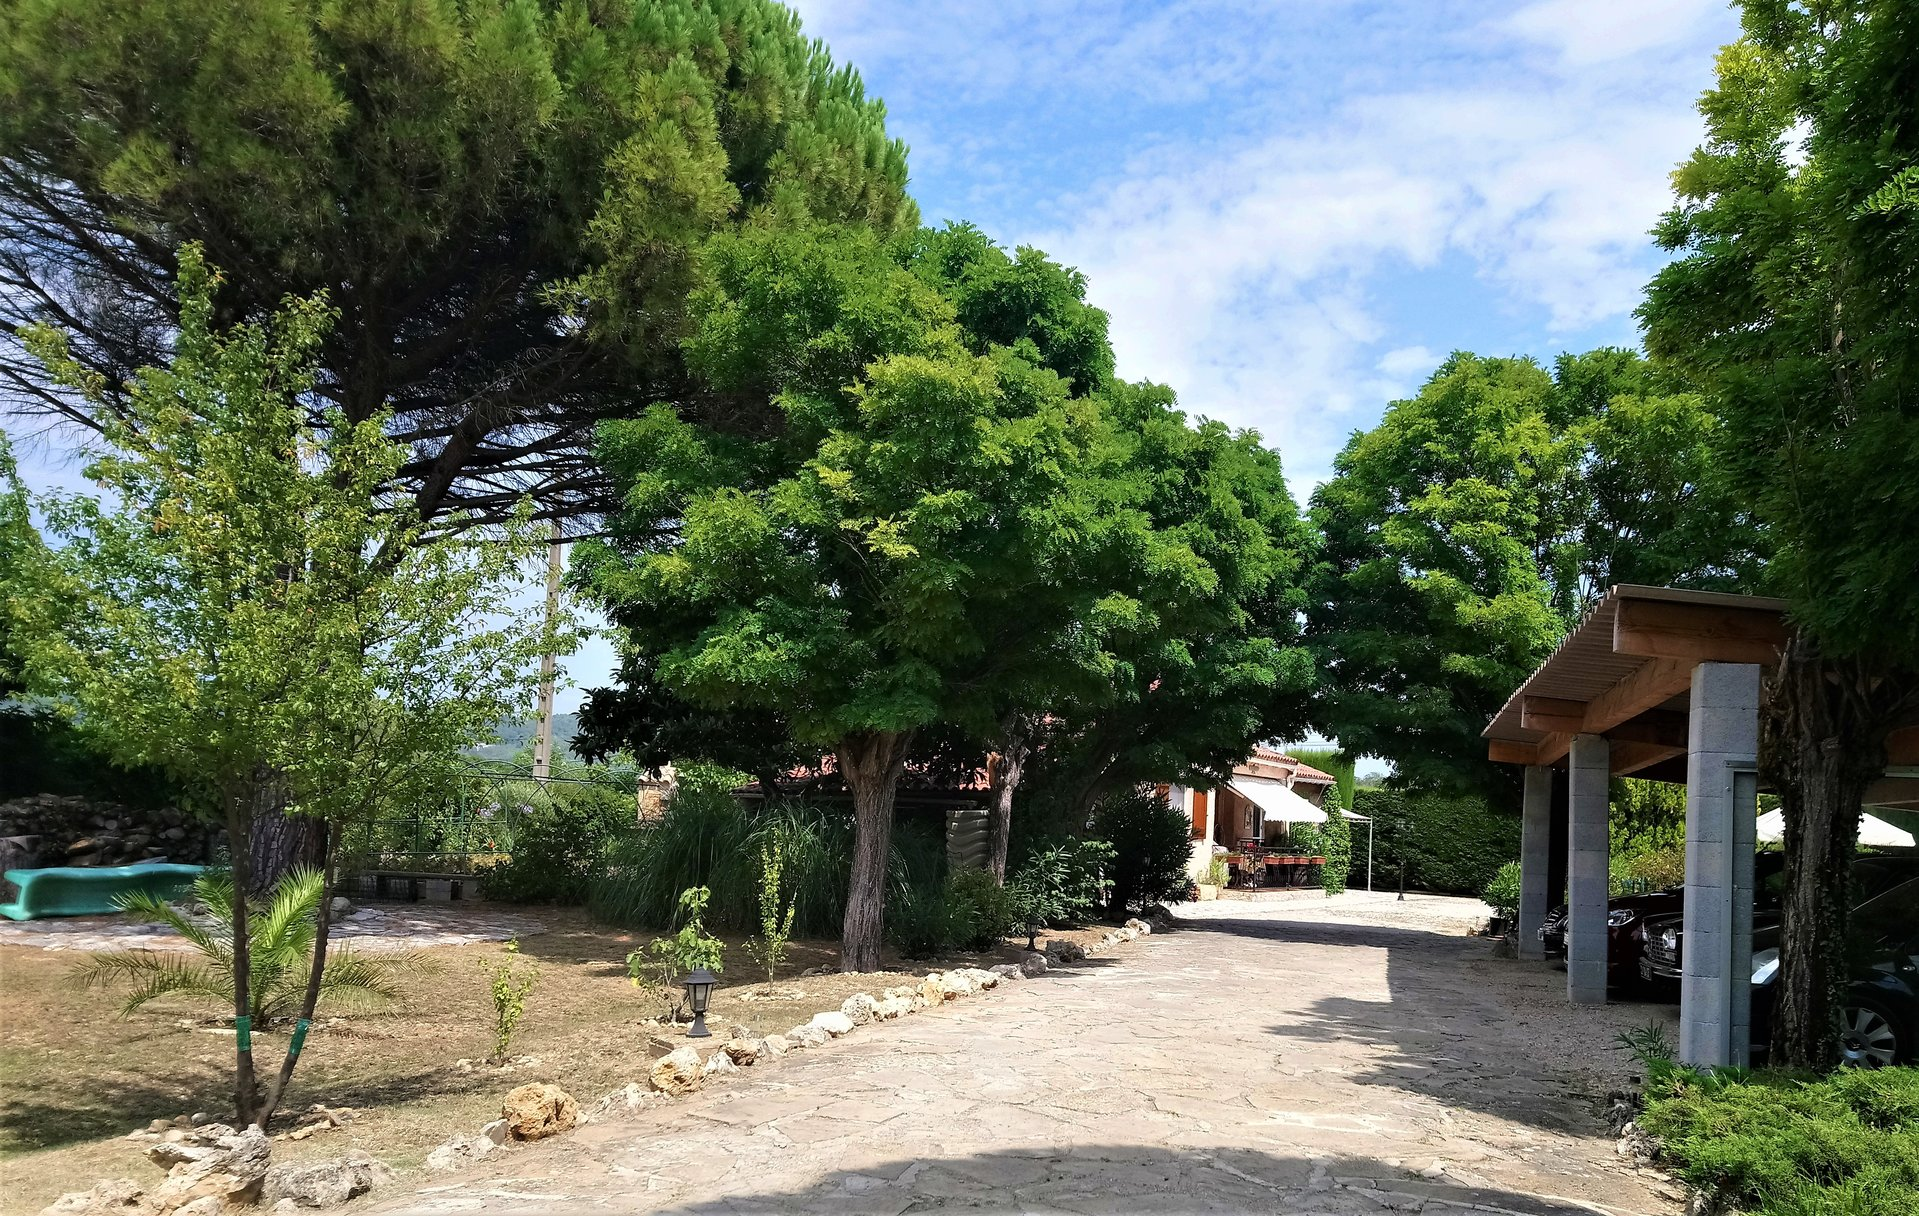 Charming Provençal villa, single storey on flat wooded and fenced land